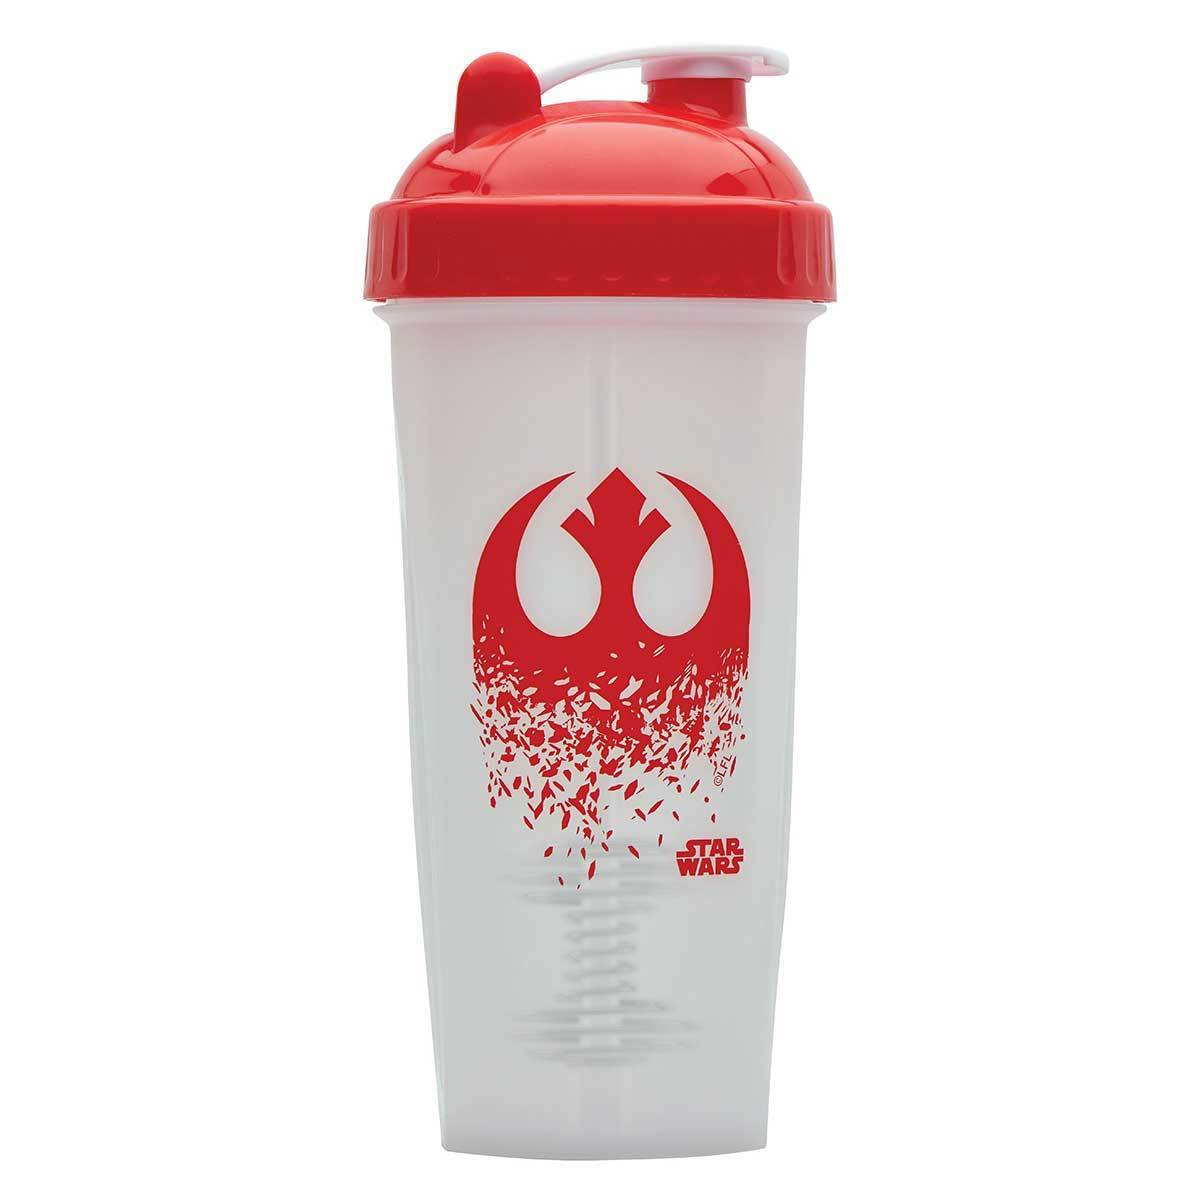 Star Wars Rebel Symbol Shaker Bottle 28oz Fitness Accessories and Apparel PerfectShaker  (1059339337771)